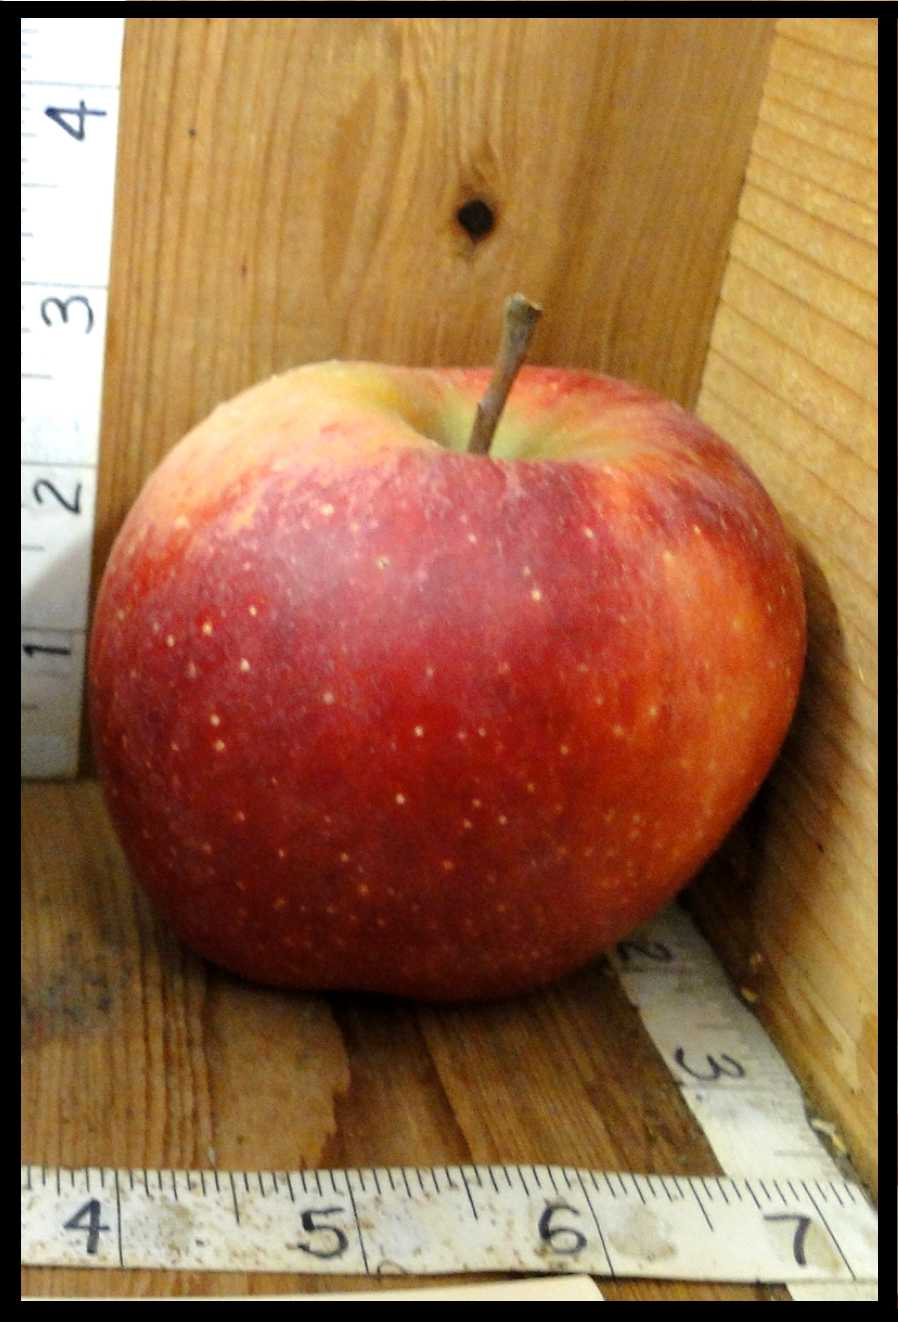 yellow apple almost entirely covered with mottled red blush and small white spots